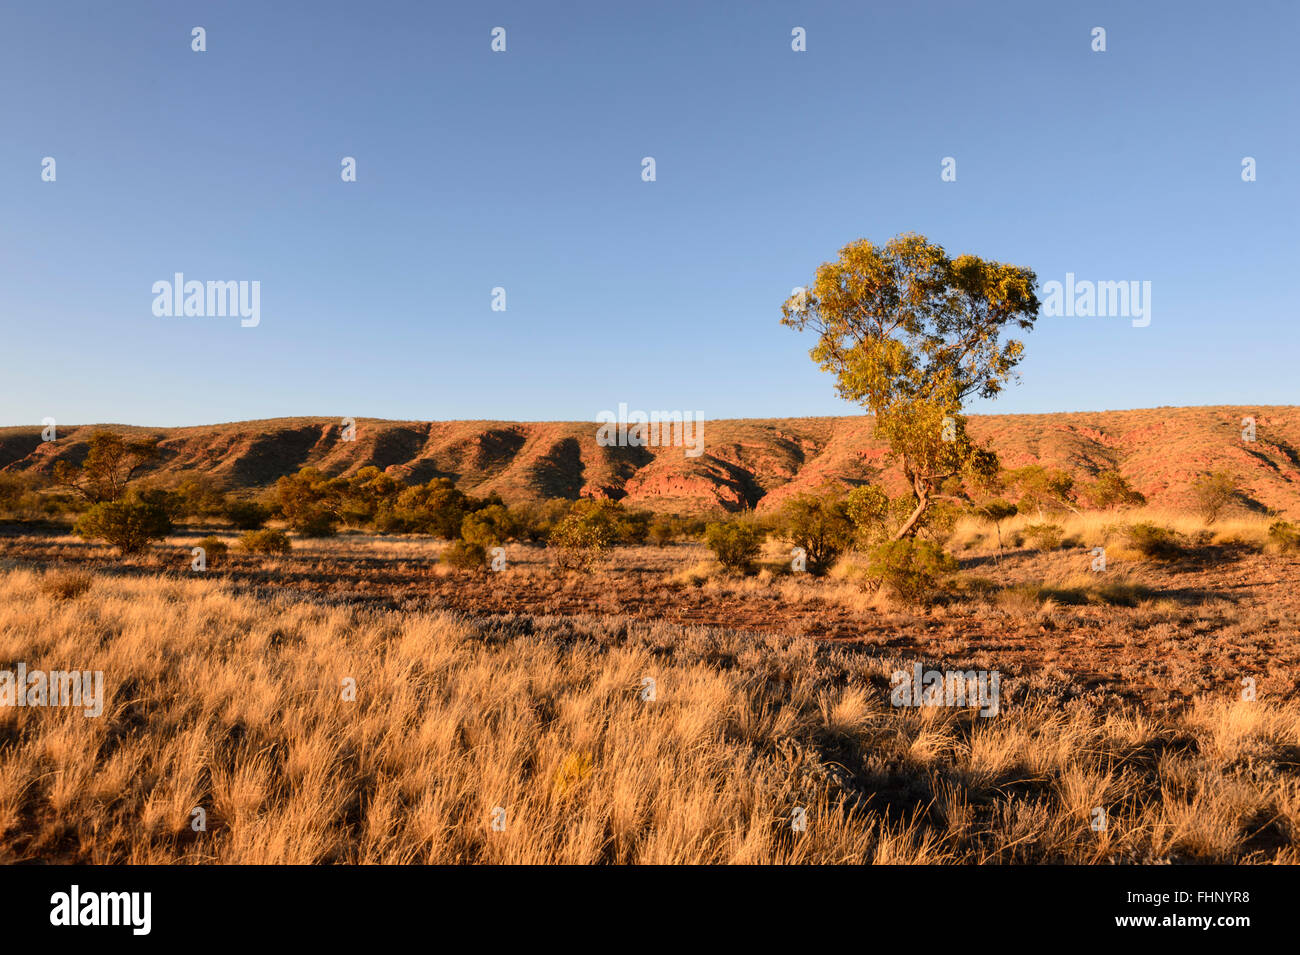 View of the West MacDonnell Ranges, Northern Territory, NT, Australia - Stock Image